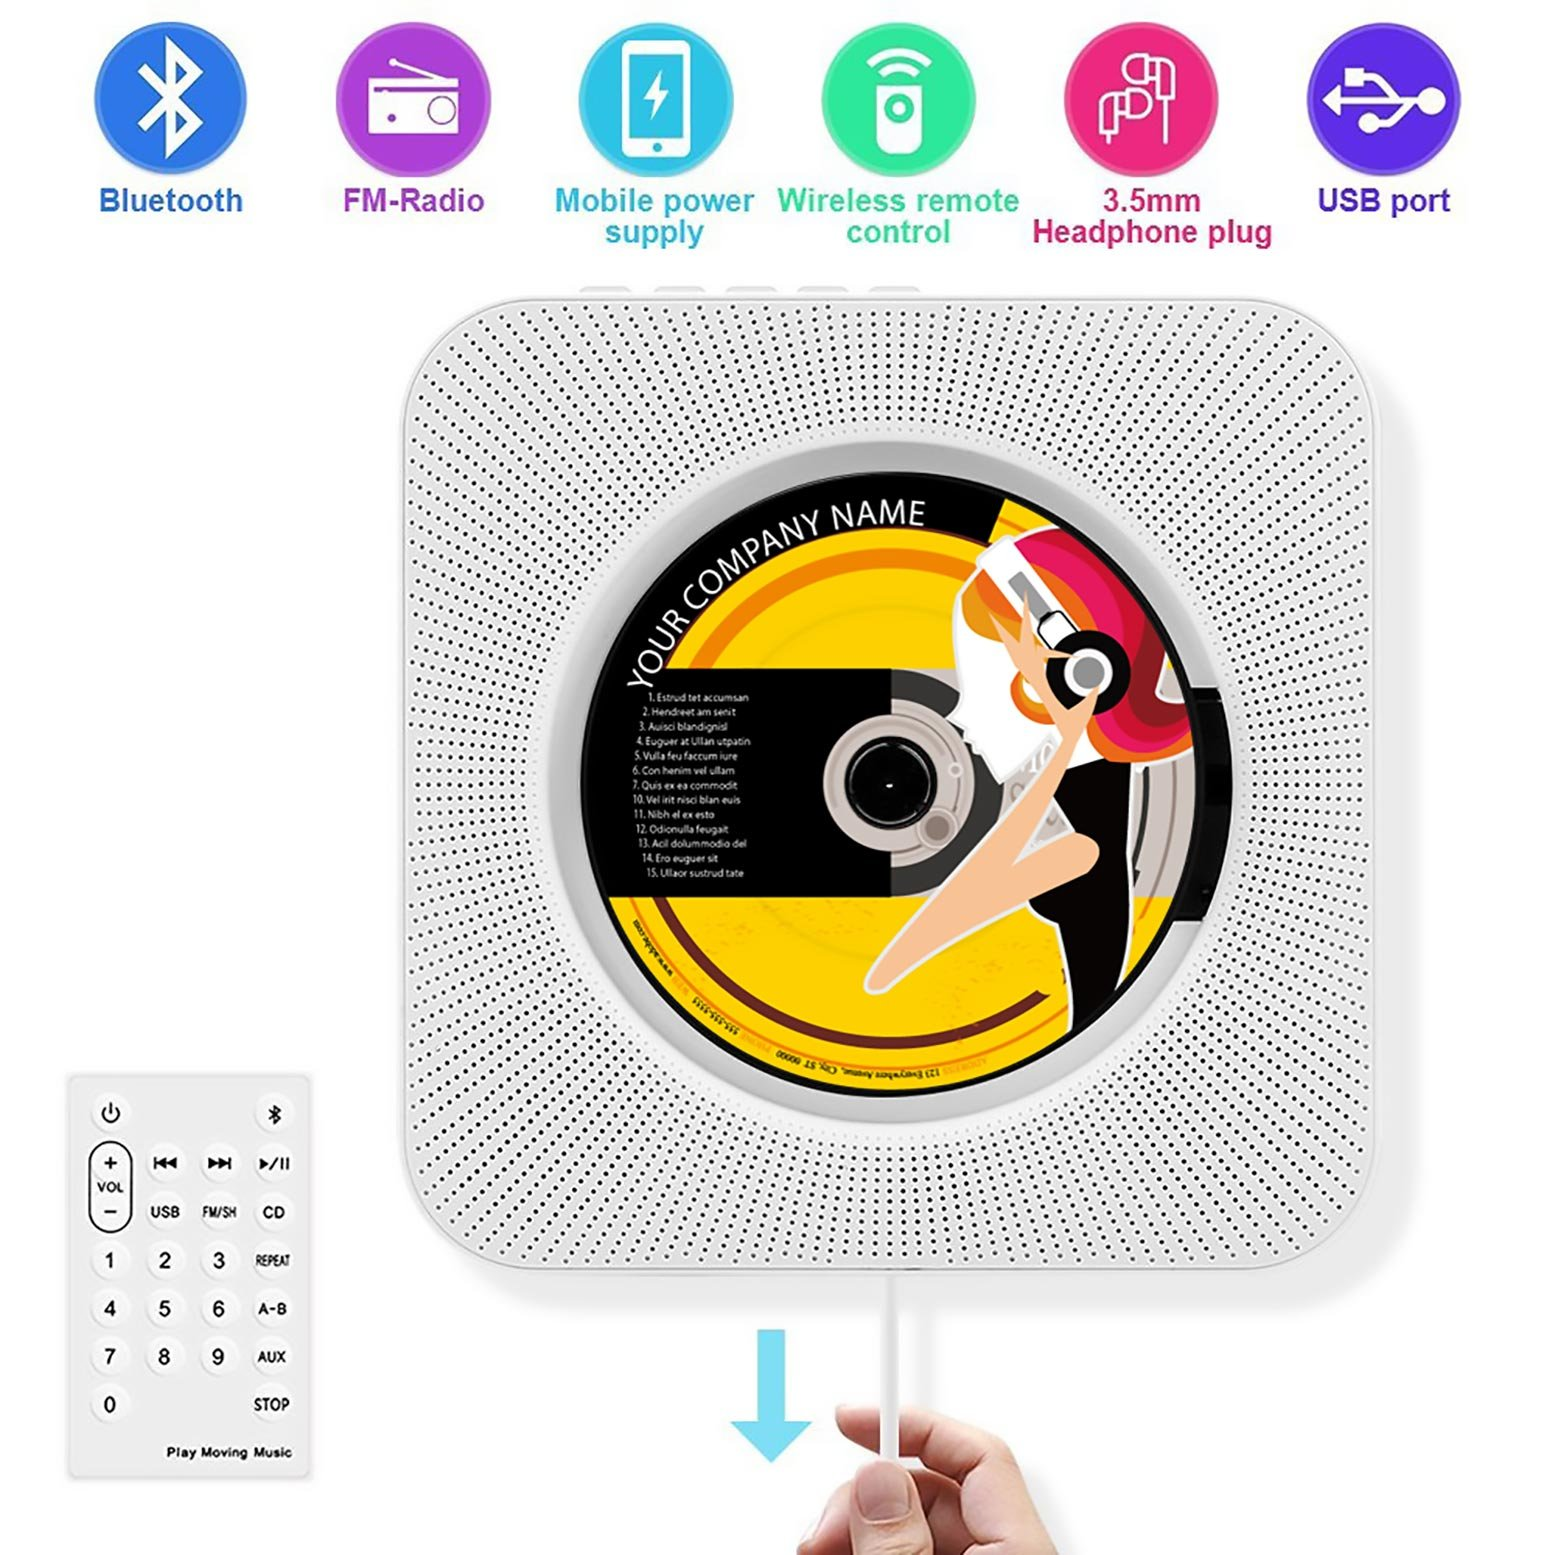 Wall CD Player with Bluetooth, Portable Wall Mountable, Remote Control, FM Radio, HiFi Speaker, Supports USB, Earphones and Phone